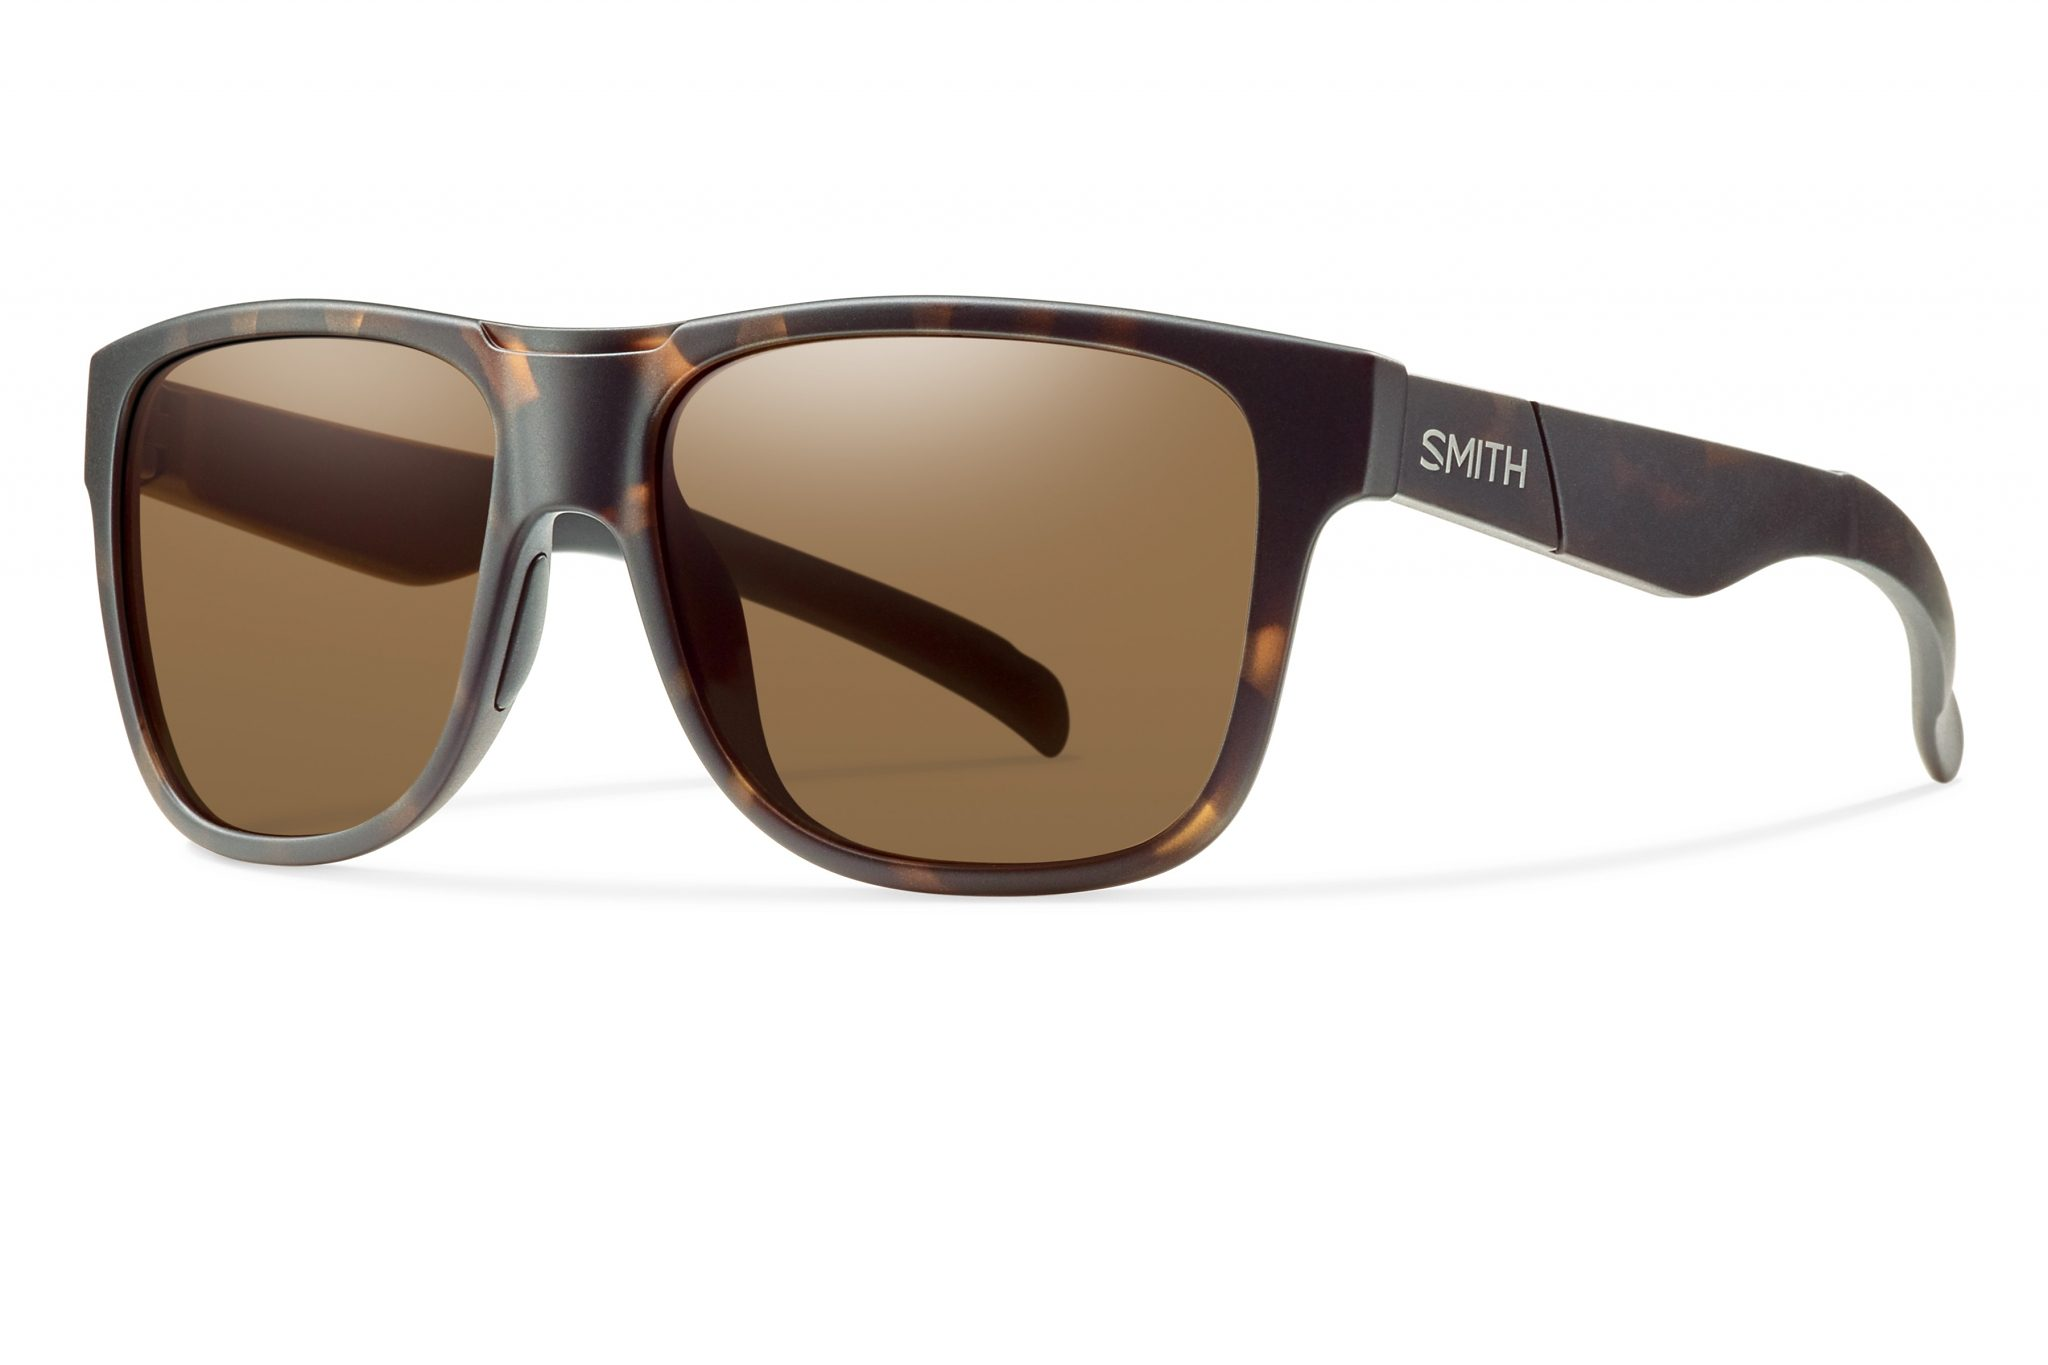 Smith Radsportbrille »Lowdown XL Glasses Men«